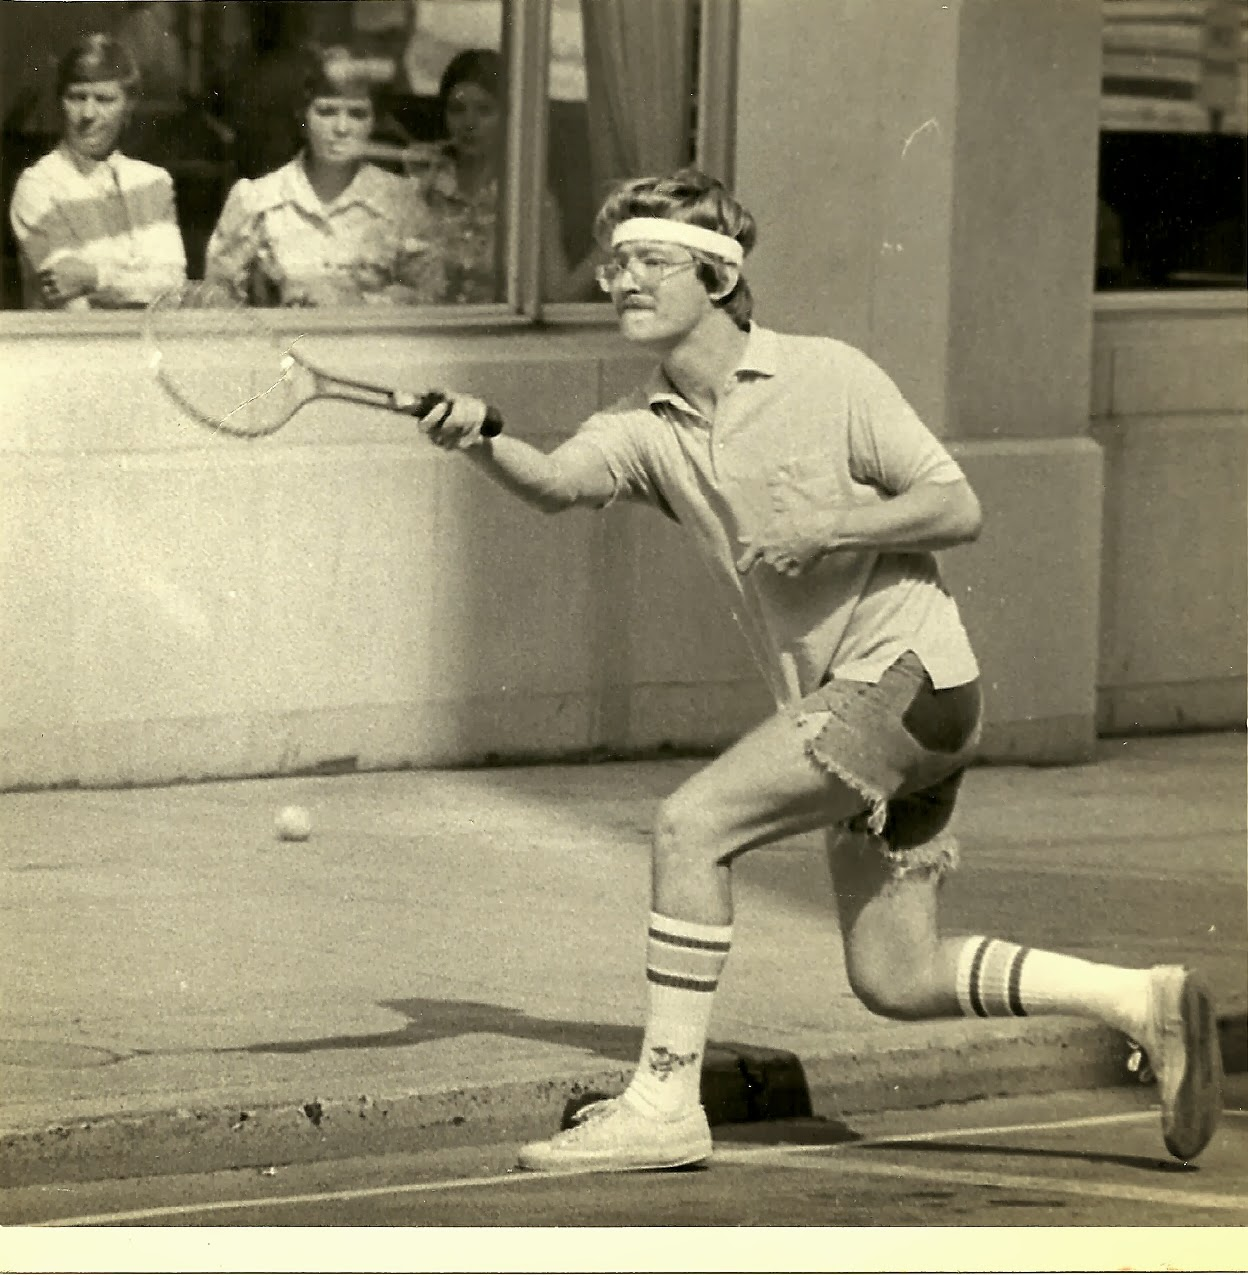 Haircut promotions blacksburg - This Is From A Promotion The Local Daily Did In About 1979 When A Bunch Of Media Types Took To The Streets To Play Tennis In Front Of God And A Bunch